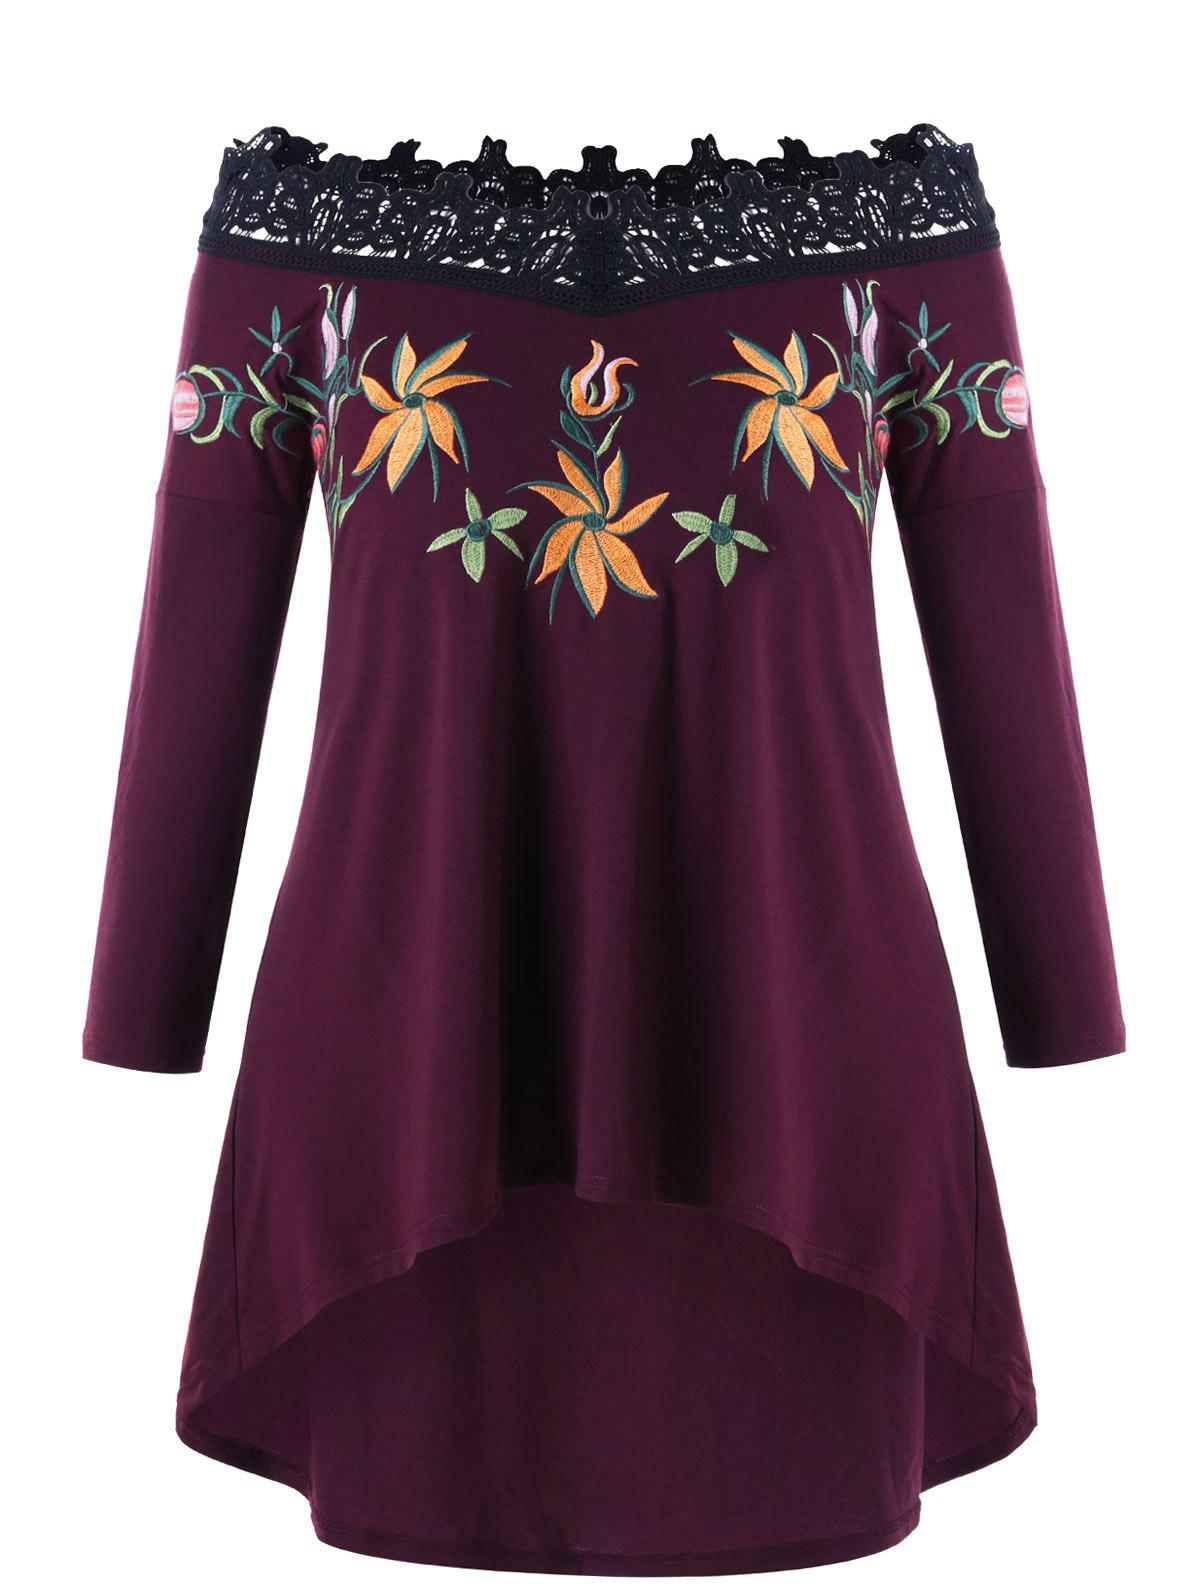 High Low Plus Size Embroidery Off Shoulder TopWOMEN<br><br>Size: 2XL; Color: COLORMIX; Material: Polyester; Shirt Length: Long; Sleeve Length: Full; Collar: Off The Shoulder; Style: Fashion; Season: Fall,Spring; Embellishment: Embroidery; Pattern Type: Others; Weight: 0.3550kg; Package Contents: 1 x Top;